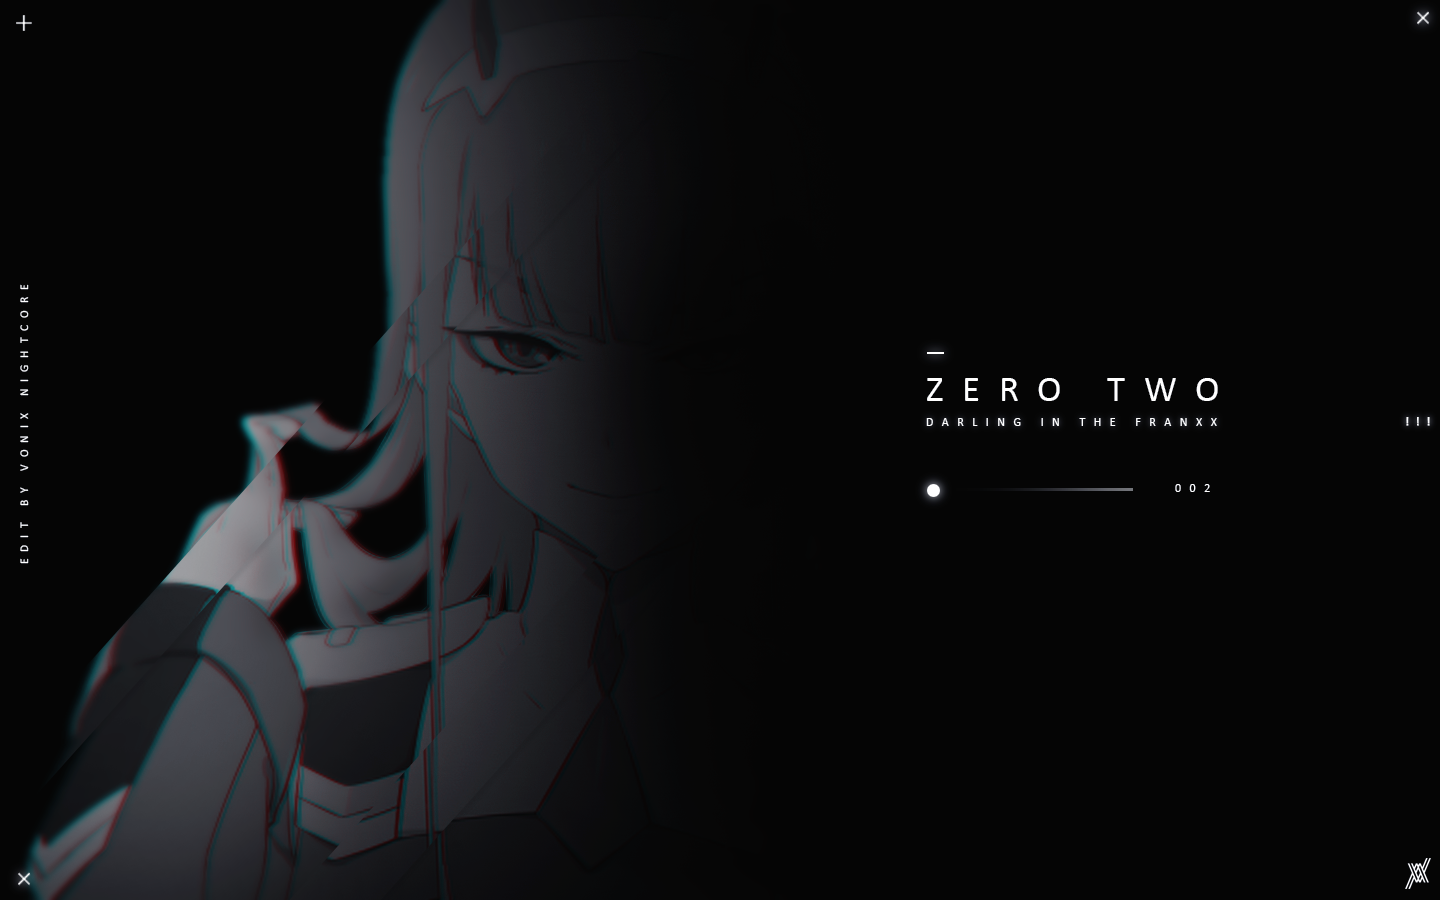 Wallpaper Zero Two Darling In Franxx Black White Zero Two Photoshop Editing Black And White